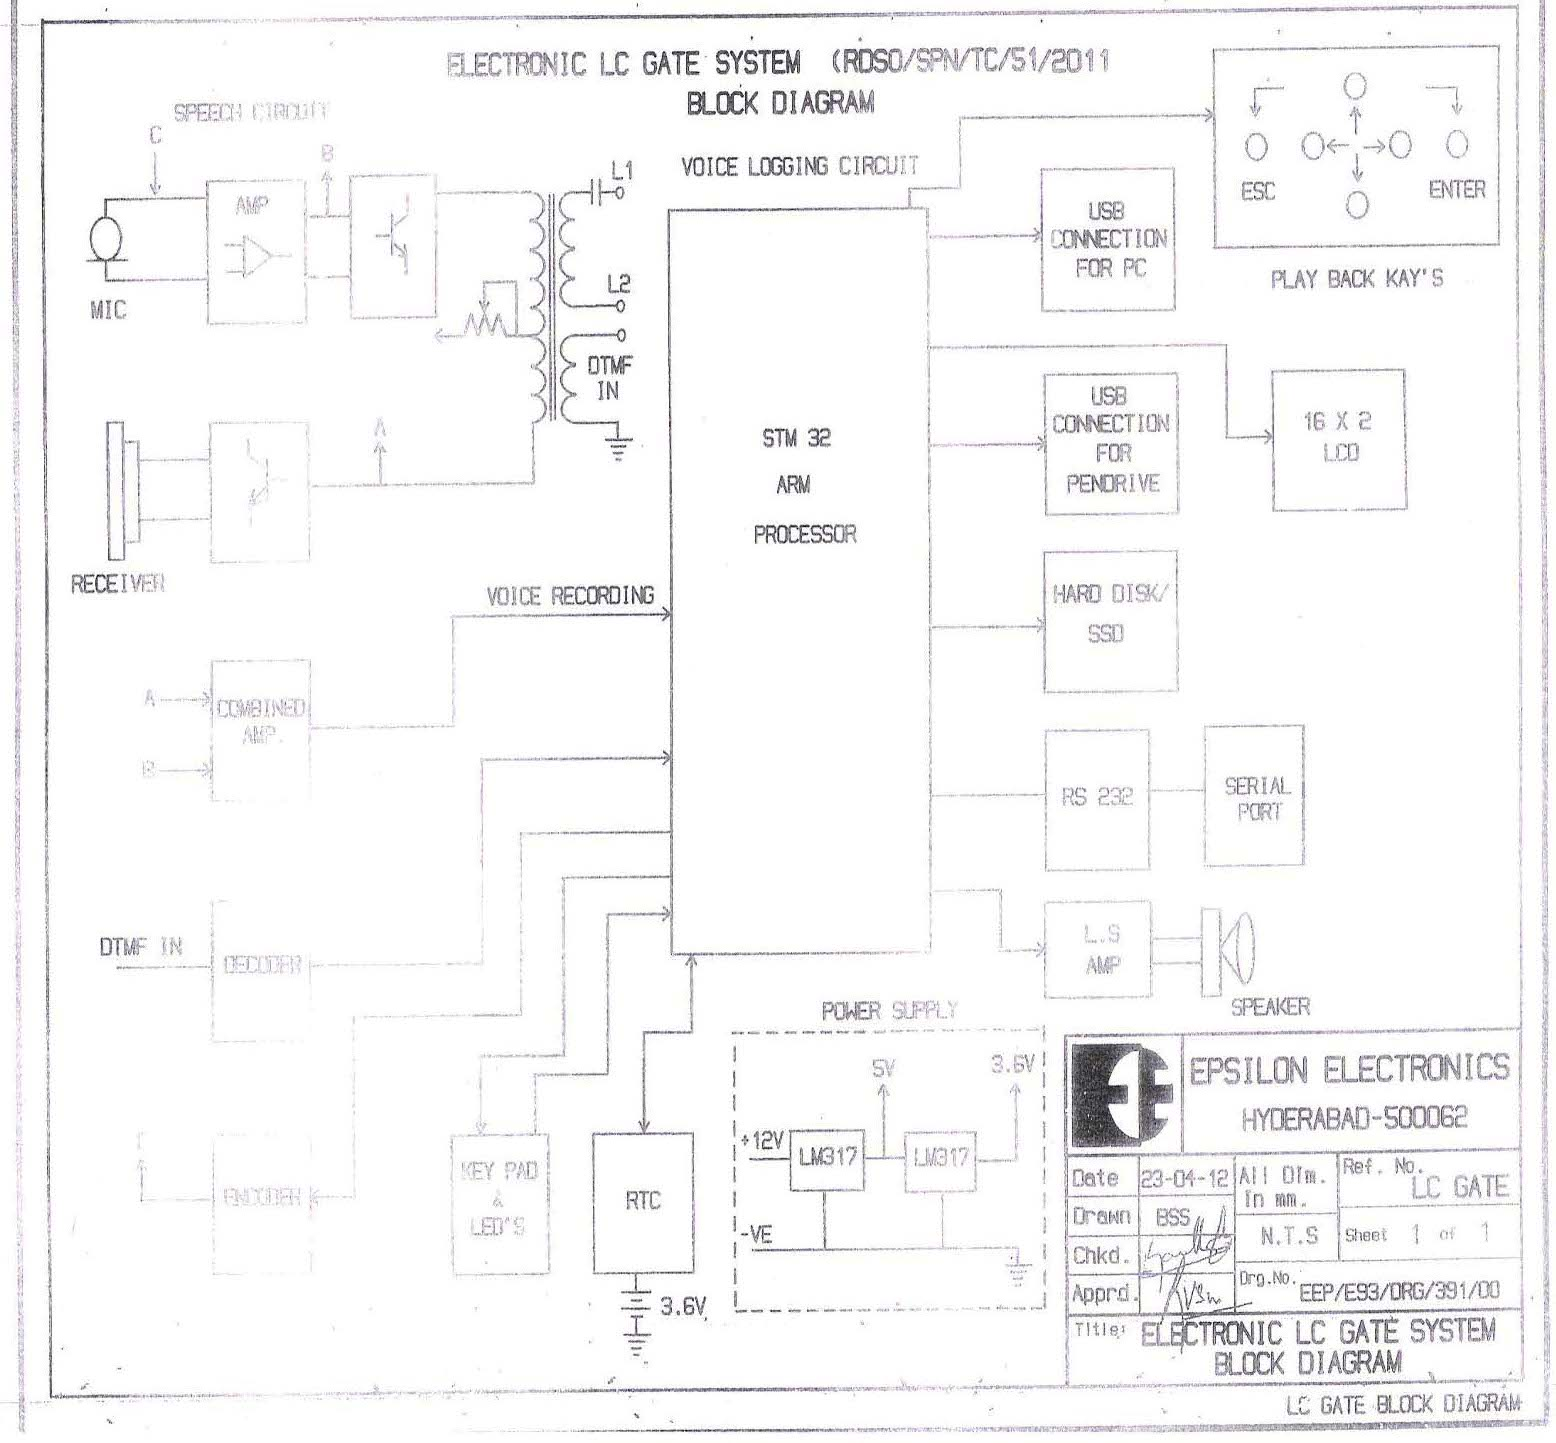 Telecom Products Telephone Audio Visual Indicator Circuit Schematic Diagram Note Please Make Sure That Usb Pen Drive Is Formatted With Fat File System And Sufficient Free Memory Available For The Copy Of Voice Records